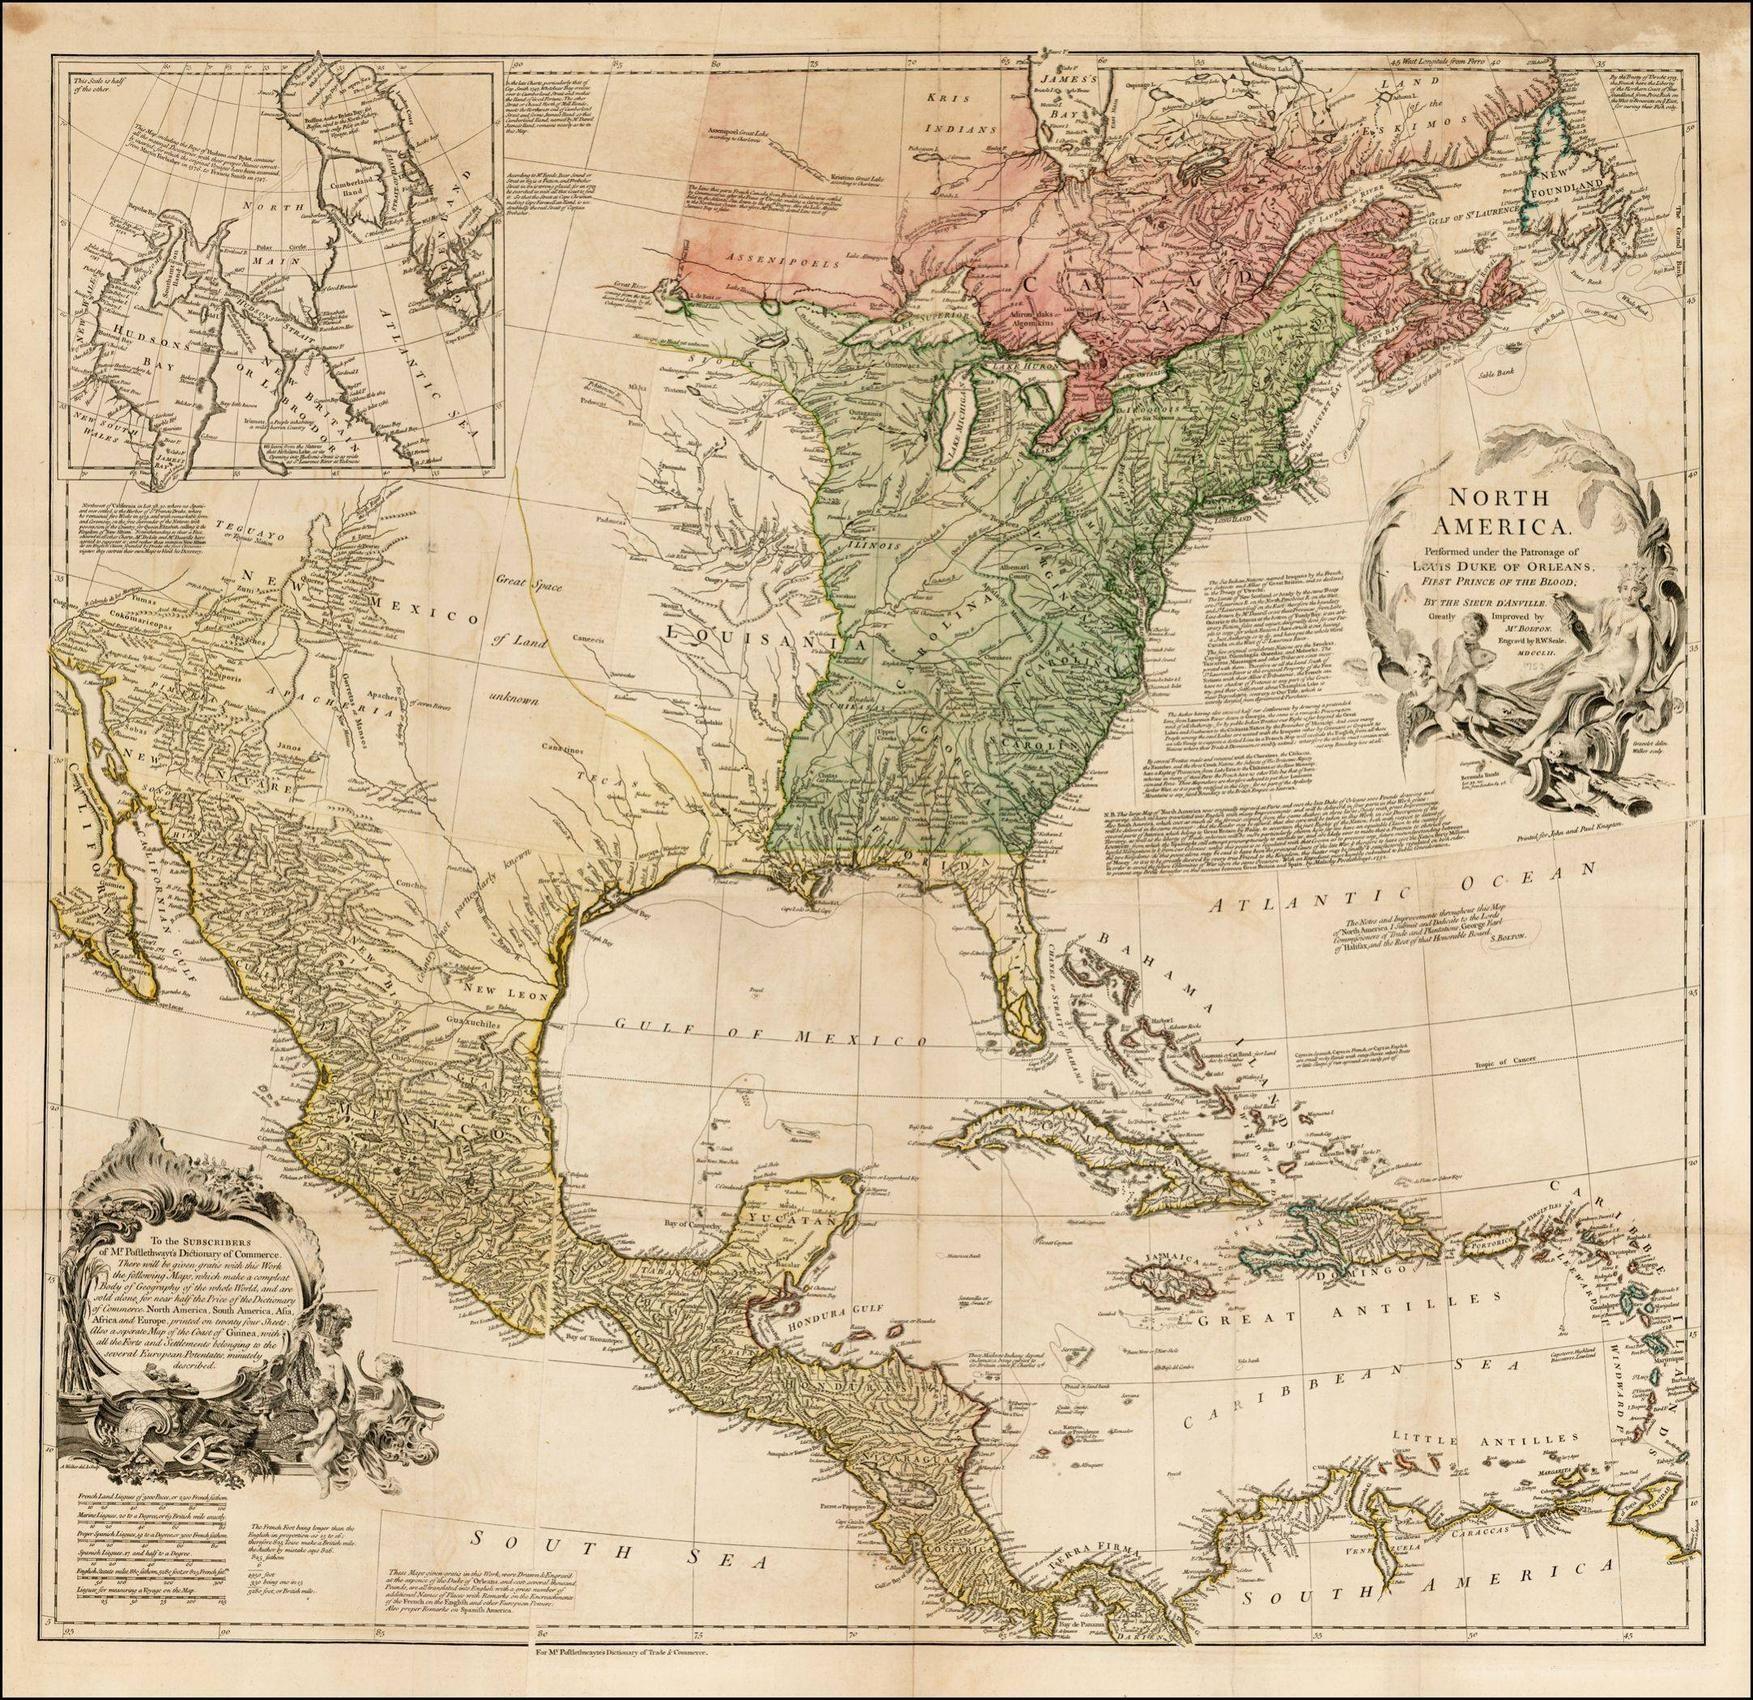 Title north america performed under the patronage of louis duke of map maker rw seale place date london 1752 coloring hand colored size 335 x 325 inches gumiabroncs Image collections